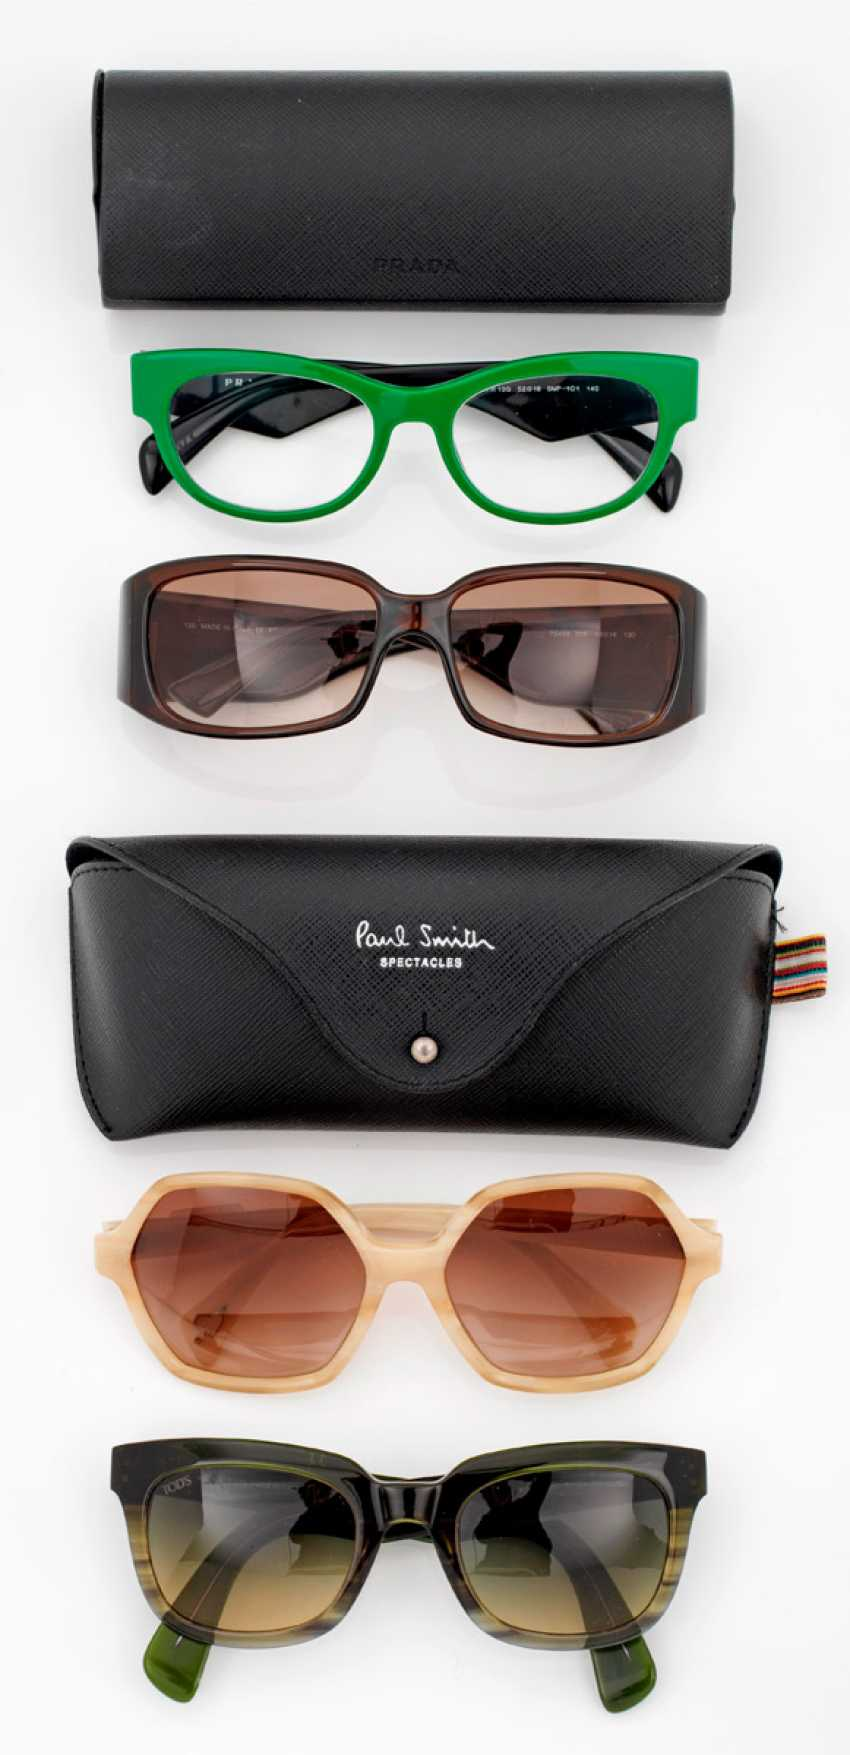 Four Designer glasses from Prada, Fendi, Tod's and Paul Smith - photo 1